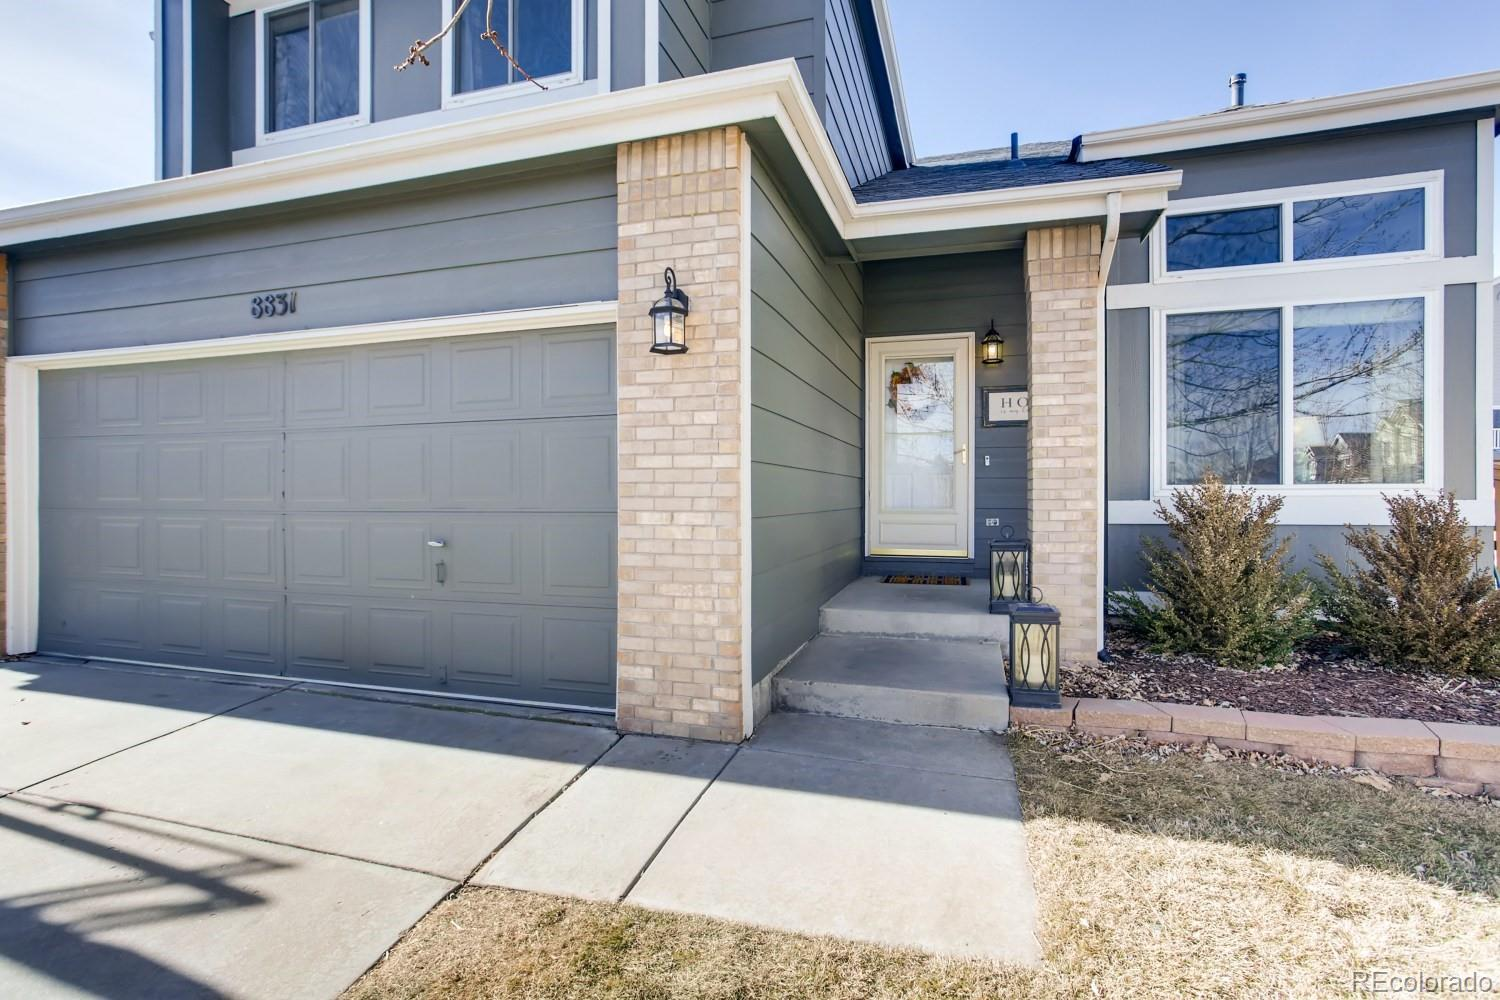 MLS# 4609575 - 2 - 8831 Miners Street, Highlands Ranch, CO 80126